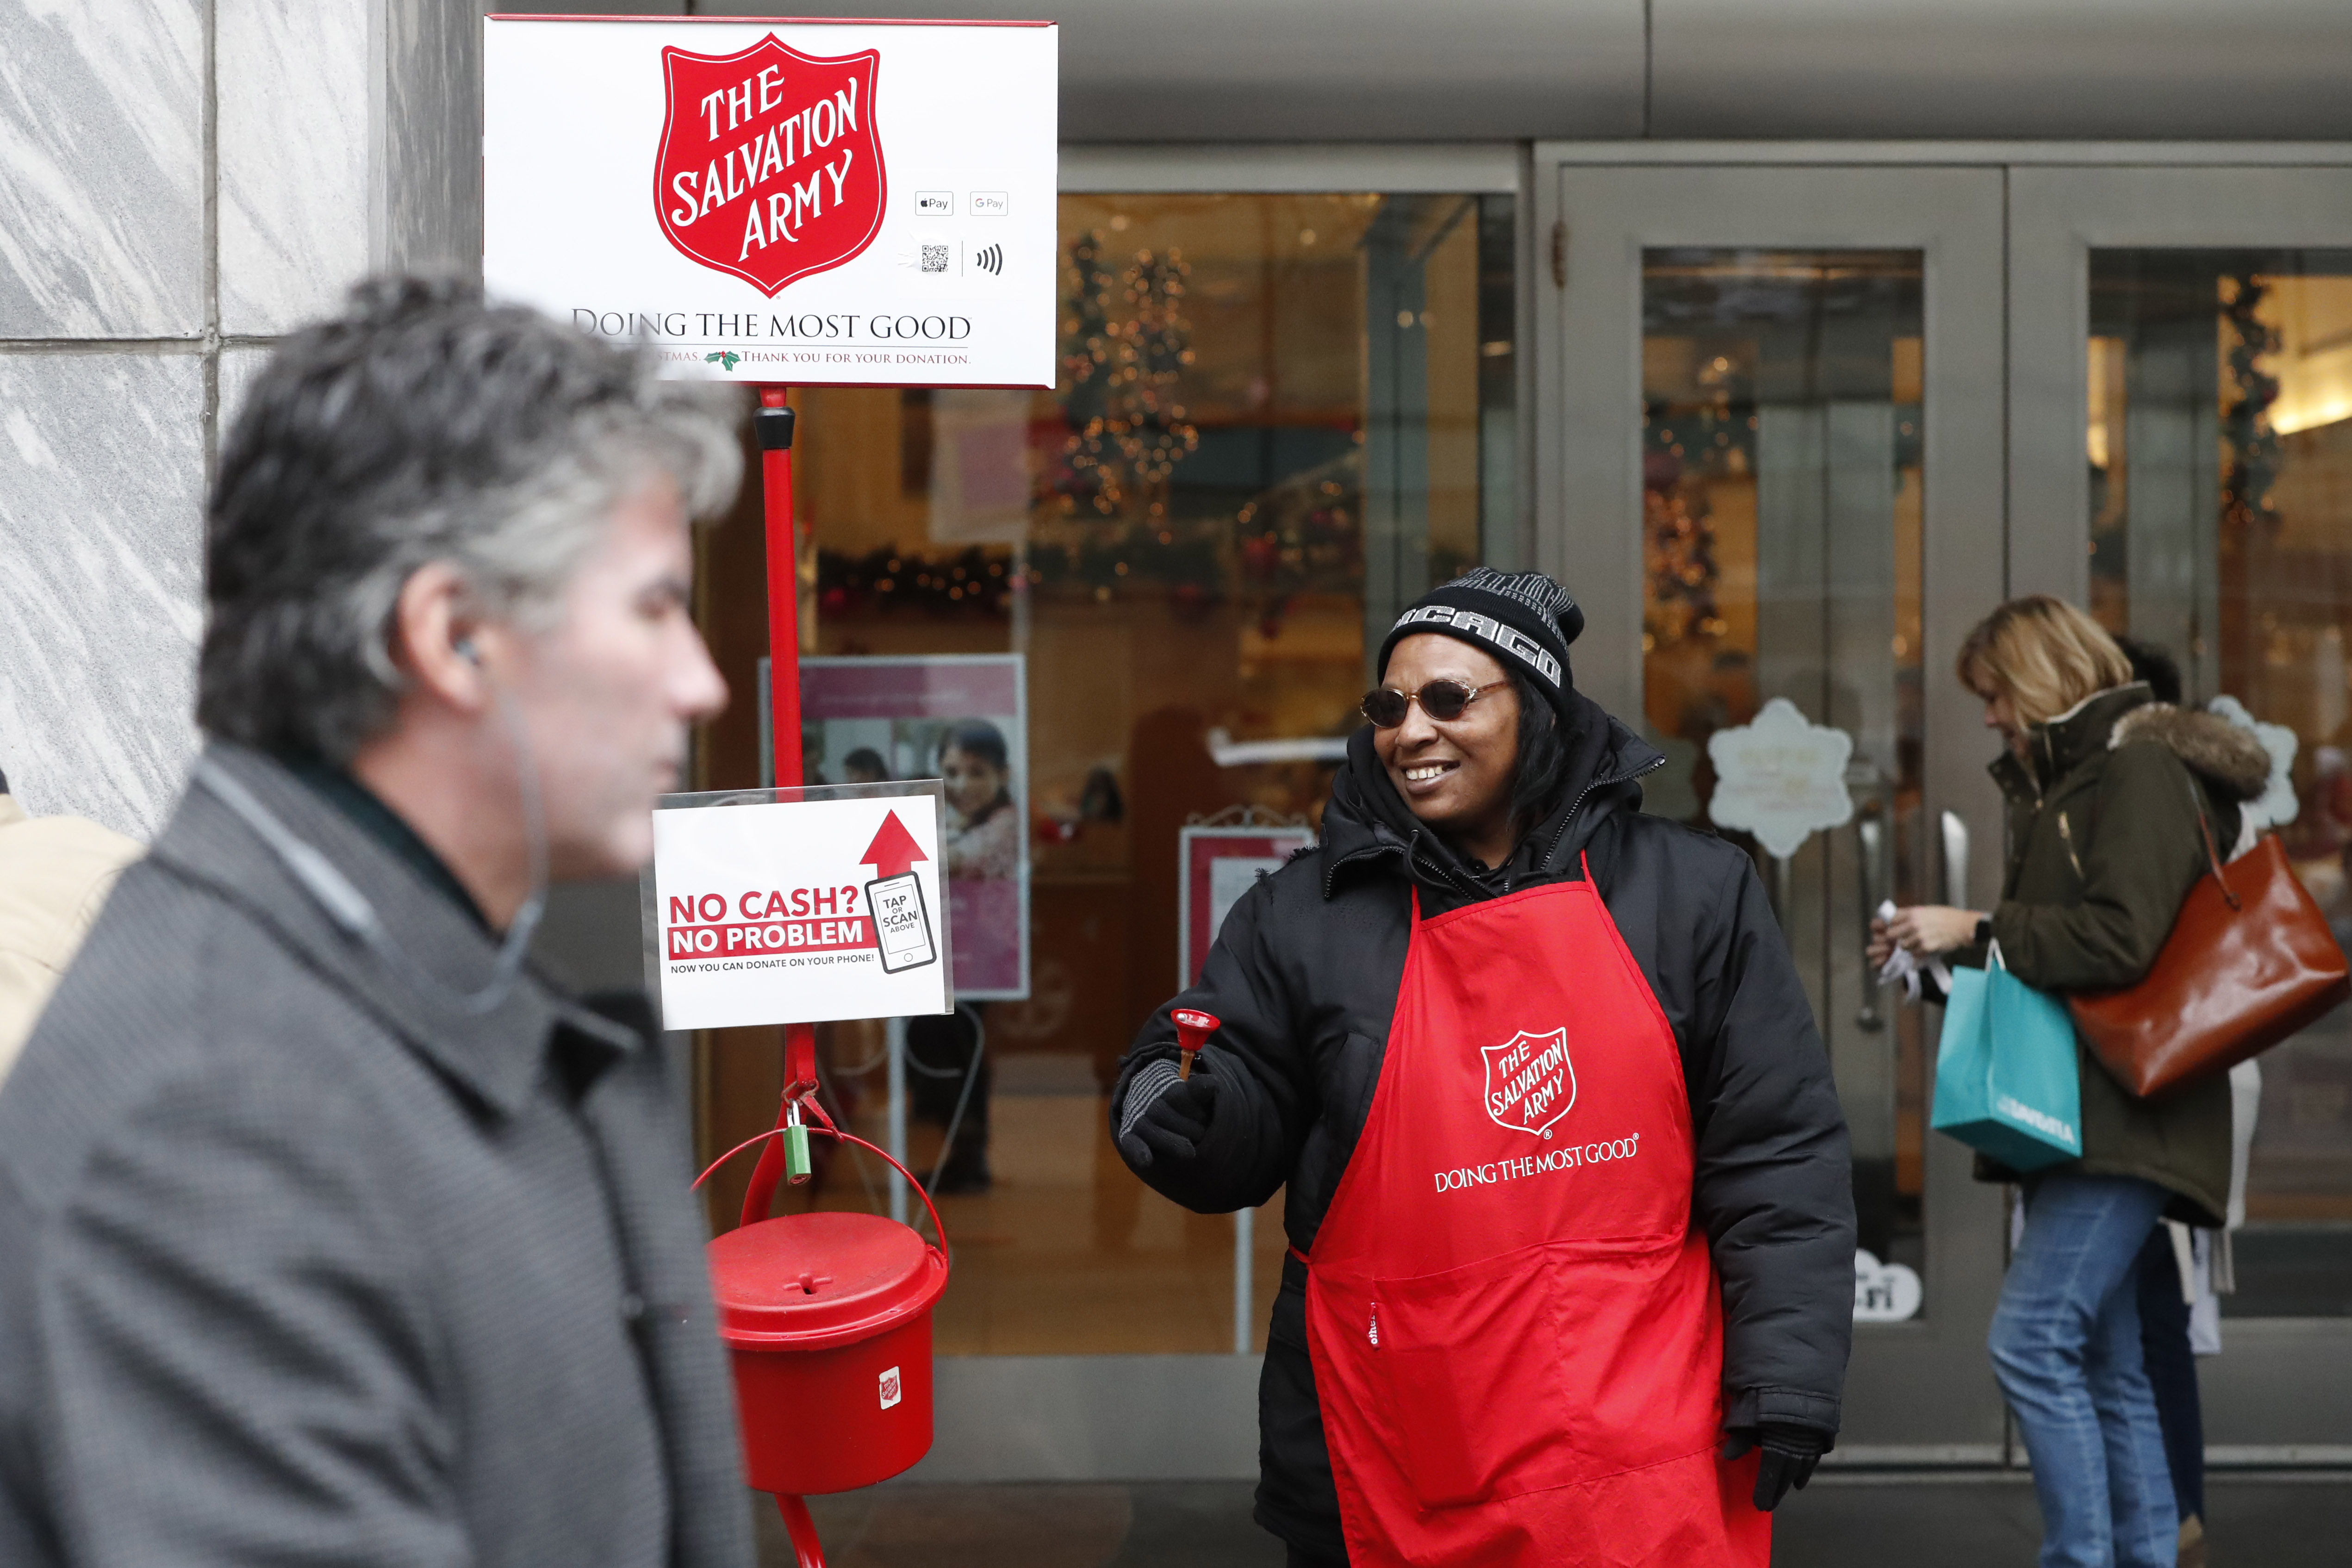 No Cash Salvation Army Now Accepting Mobile Donations